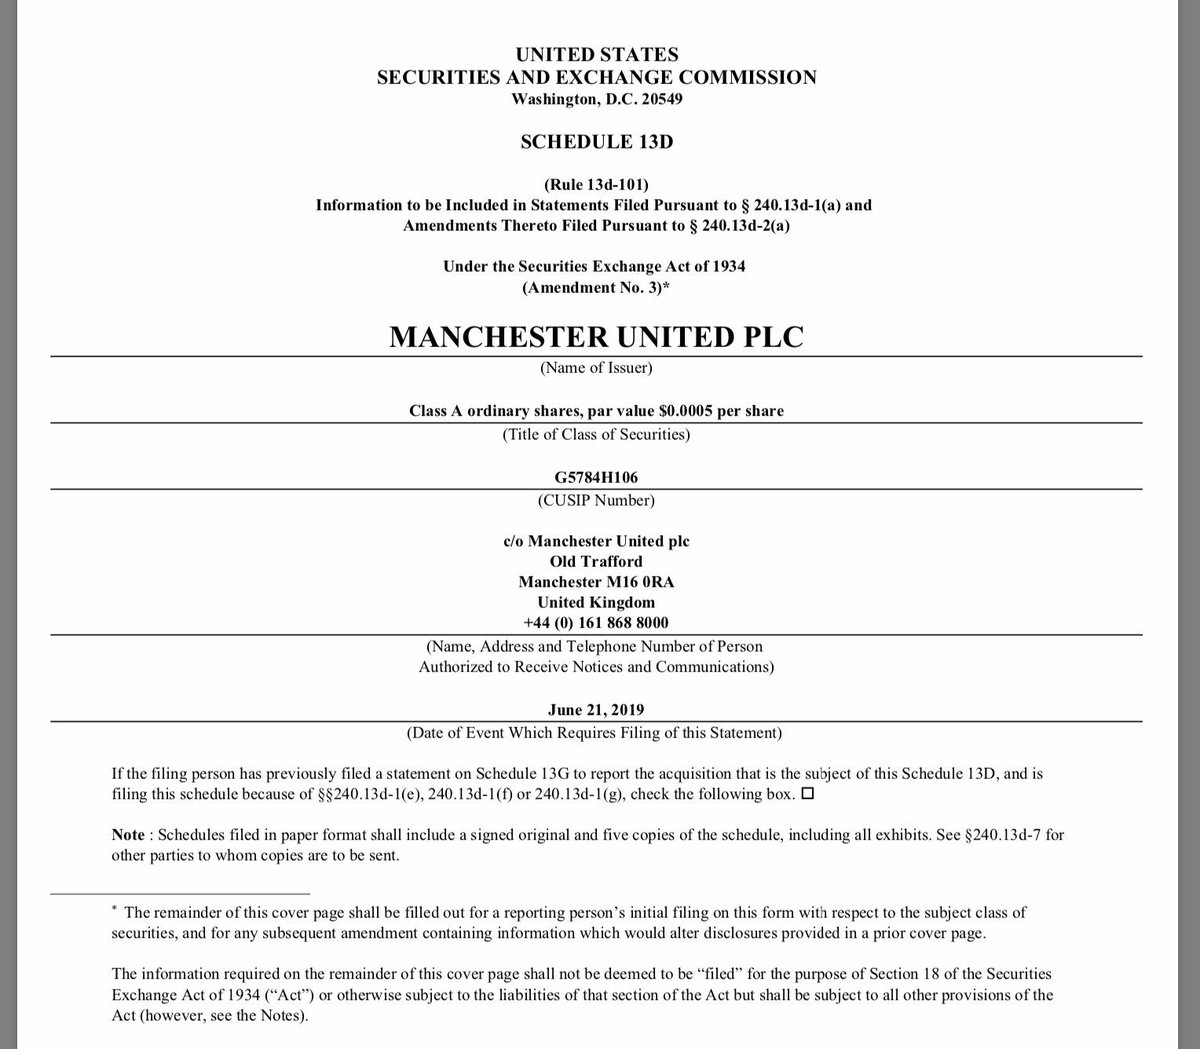 Darcie Glazer, one of the owners of Manchester United, takes out a loan secured on 393,000 shares in #MUFC, worth about $6.9 million